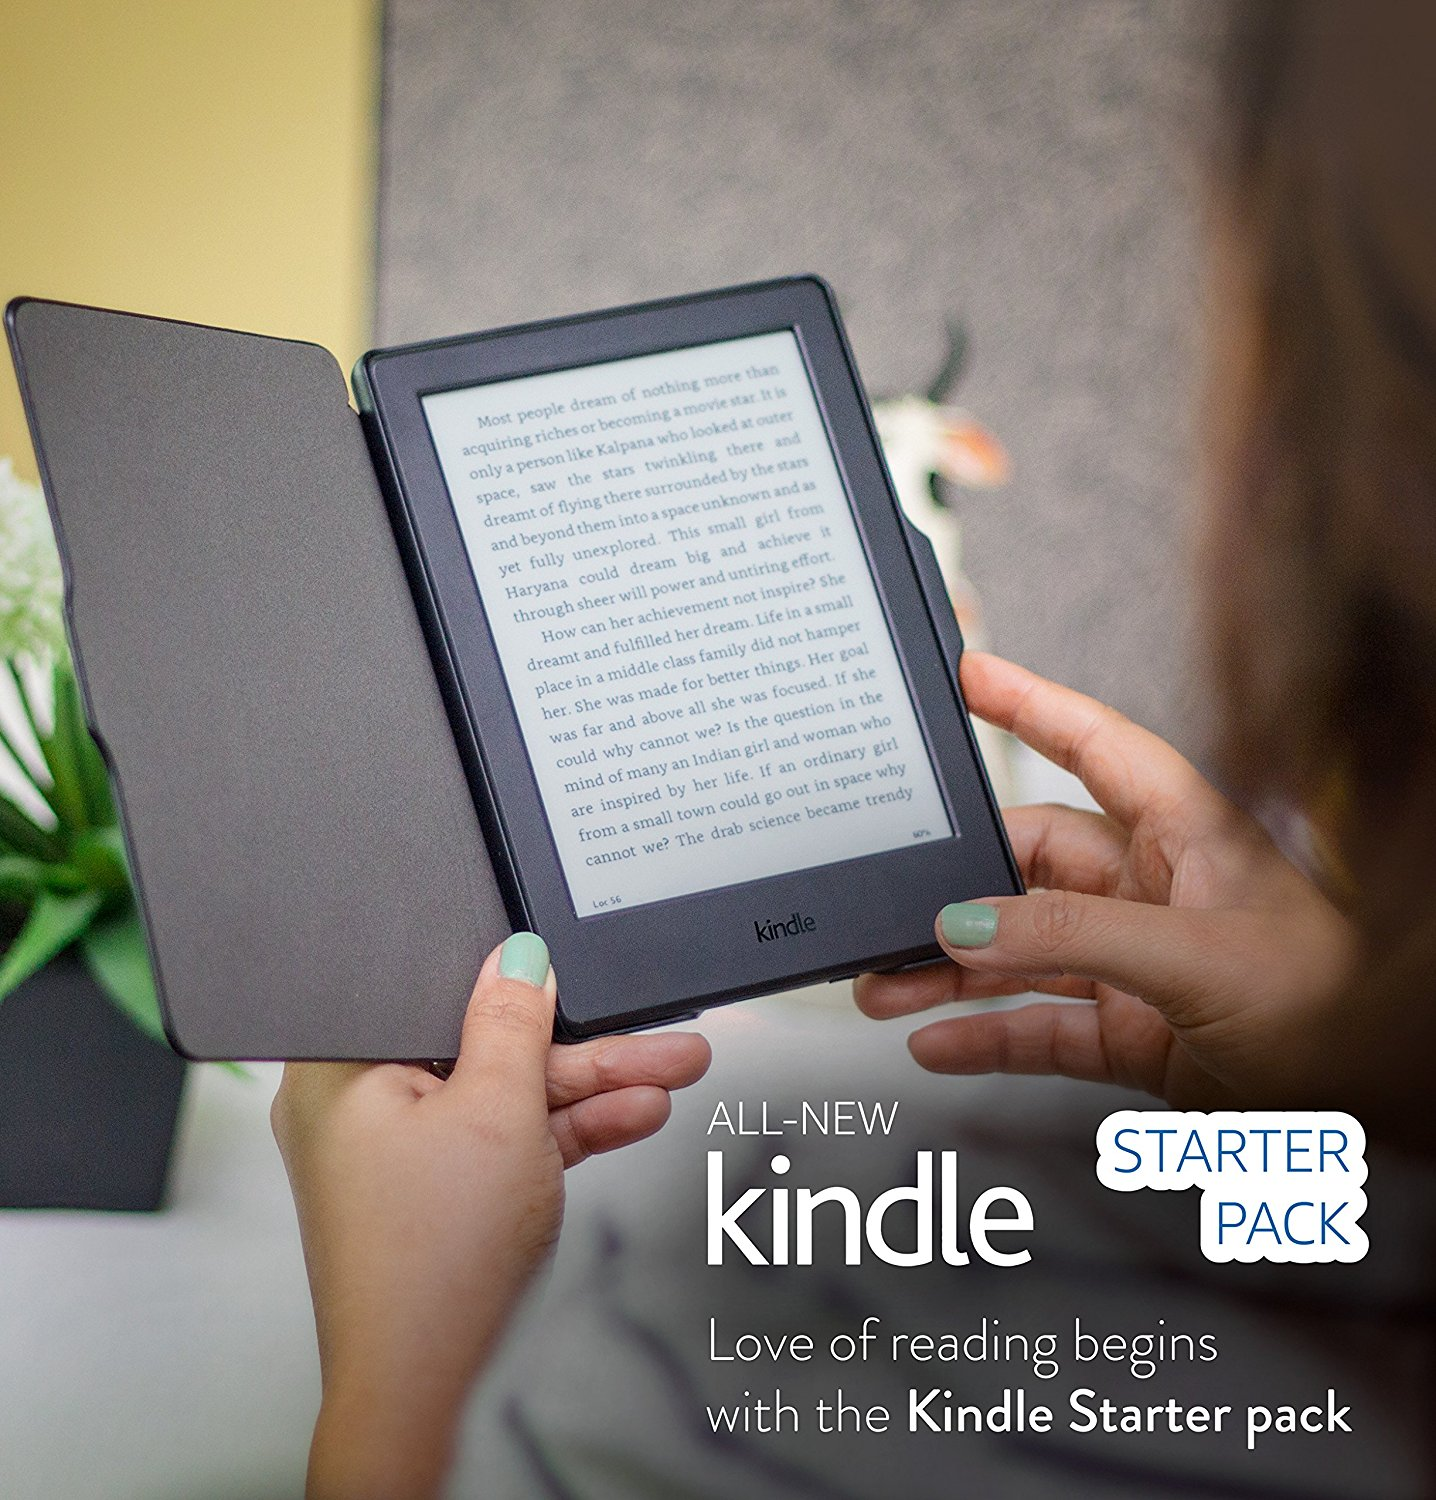 Kindle Starter Pack with All-New Kindle E-Reader in Black (MRP Rs 5,999), NuPro SlimFit Cover for Kindle (MRP Rs 999)